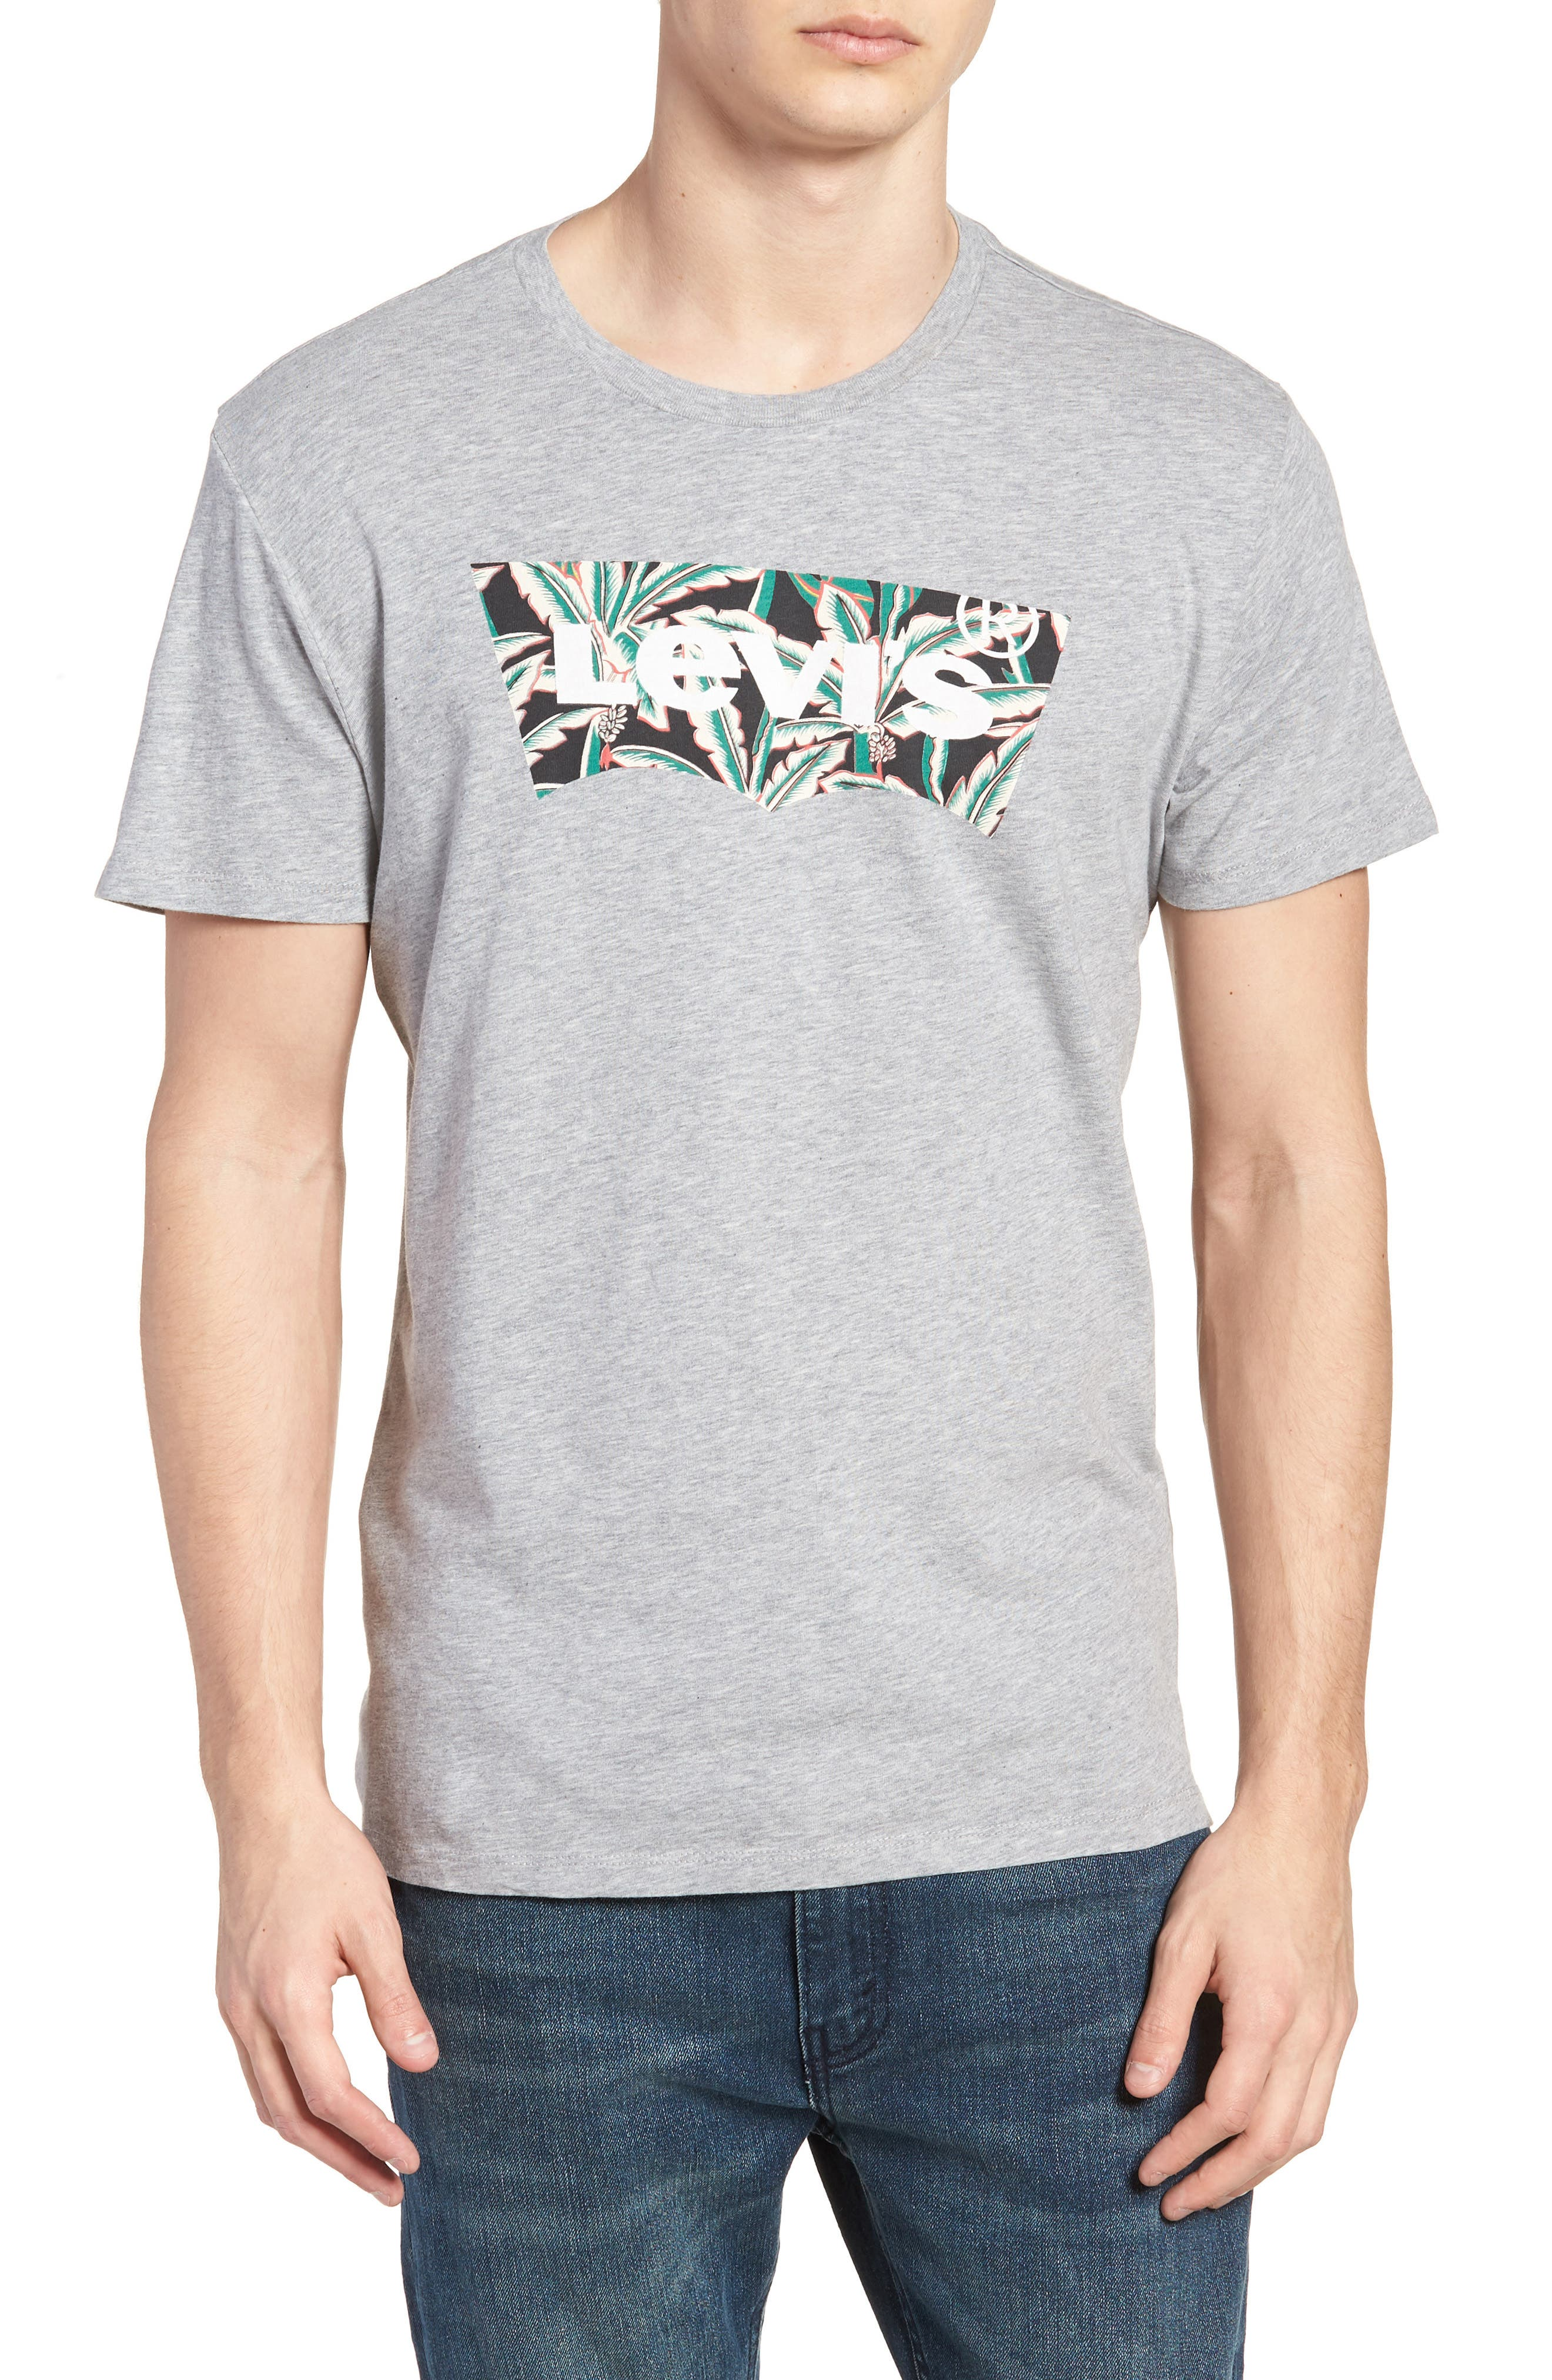 Housemark Graphic T-Shirt,                         Main,                         color, Midtone Grey Heather